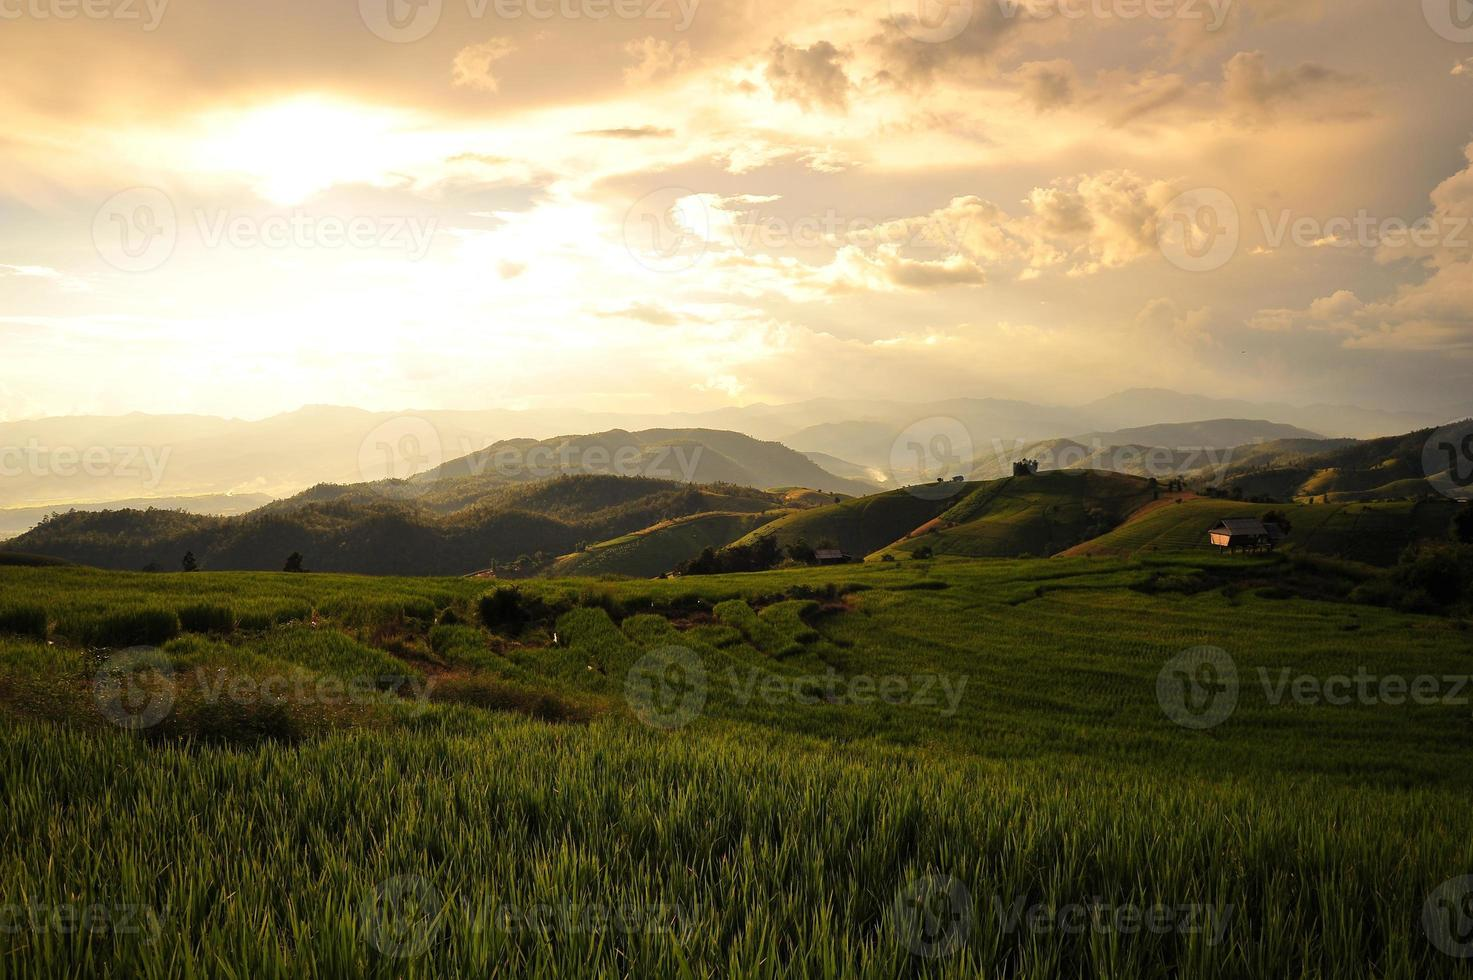 Rice Terraced Fields Landscape on the Mountain photo